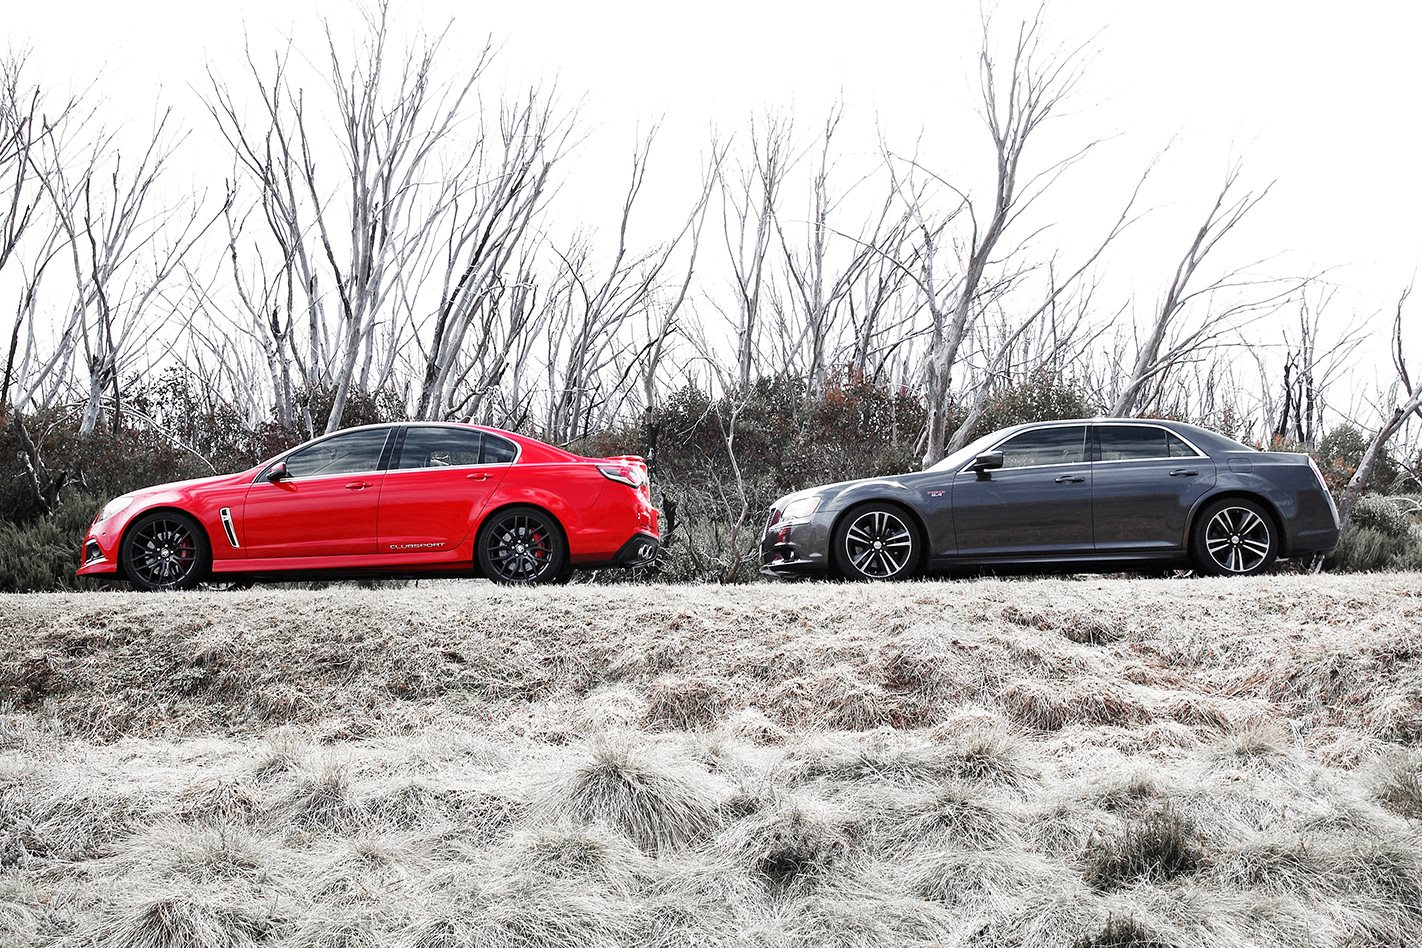 HSV Clubsport vs Chrysler 300 SRT8 Core side